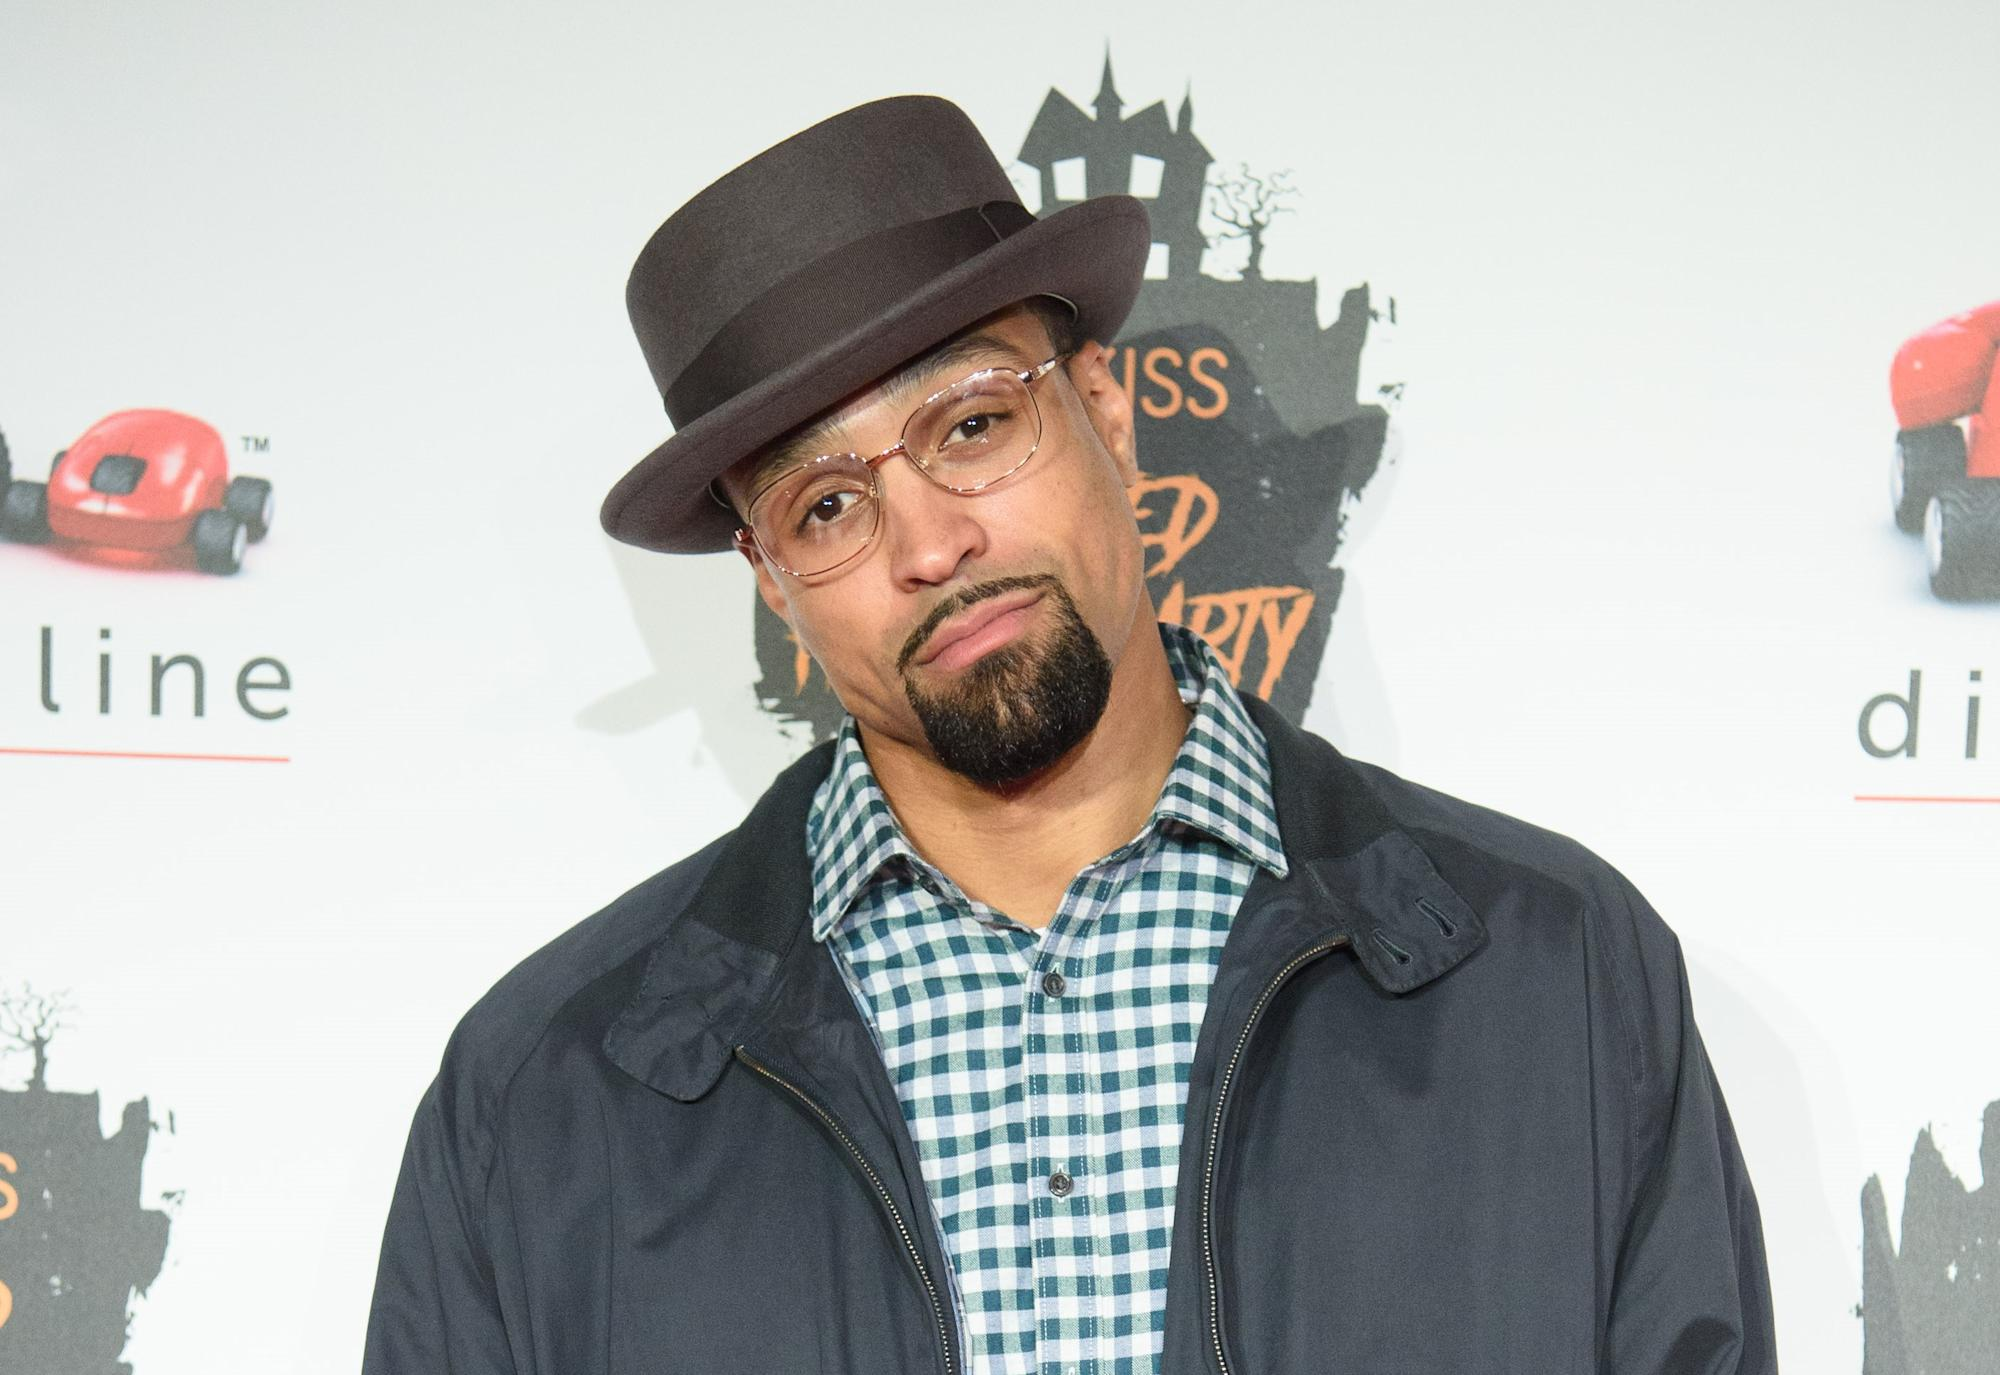 Ashley Banjo says his Britain's Got Talent Black Lives Matter routine caused divisions in his own family